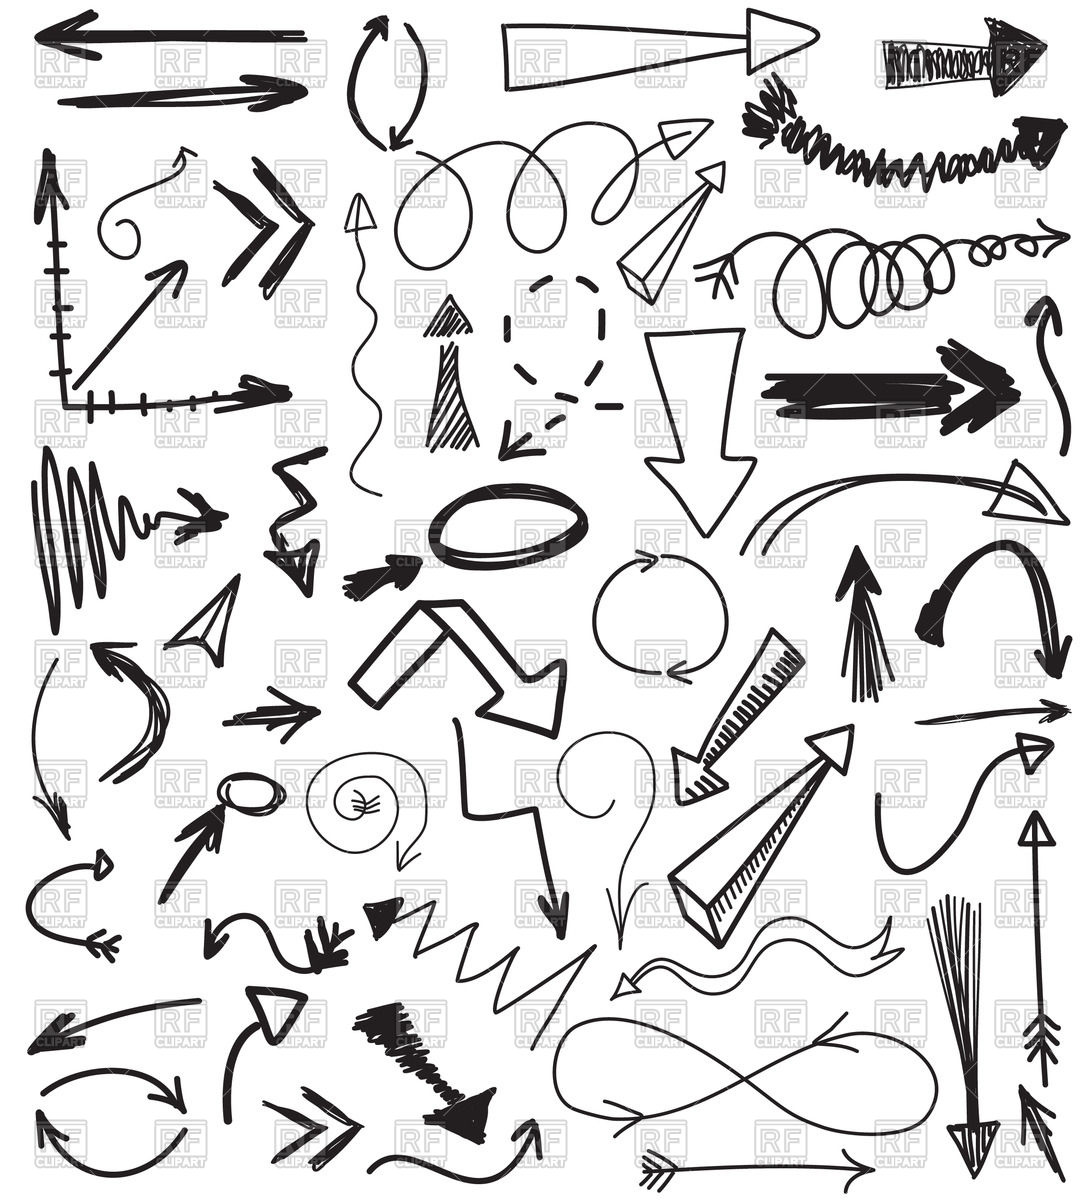 free vector drawing at getdrawings com free for personal use free rh getdrawings com Vector Graphics free vector christmas clipart downloads